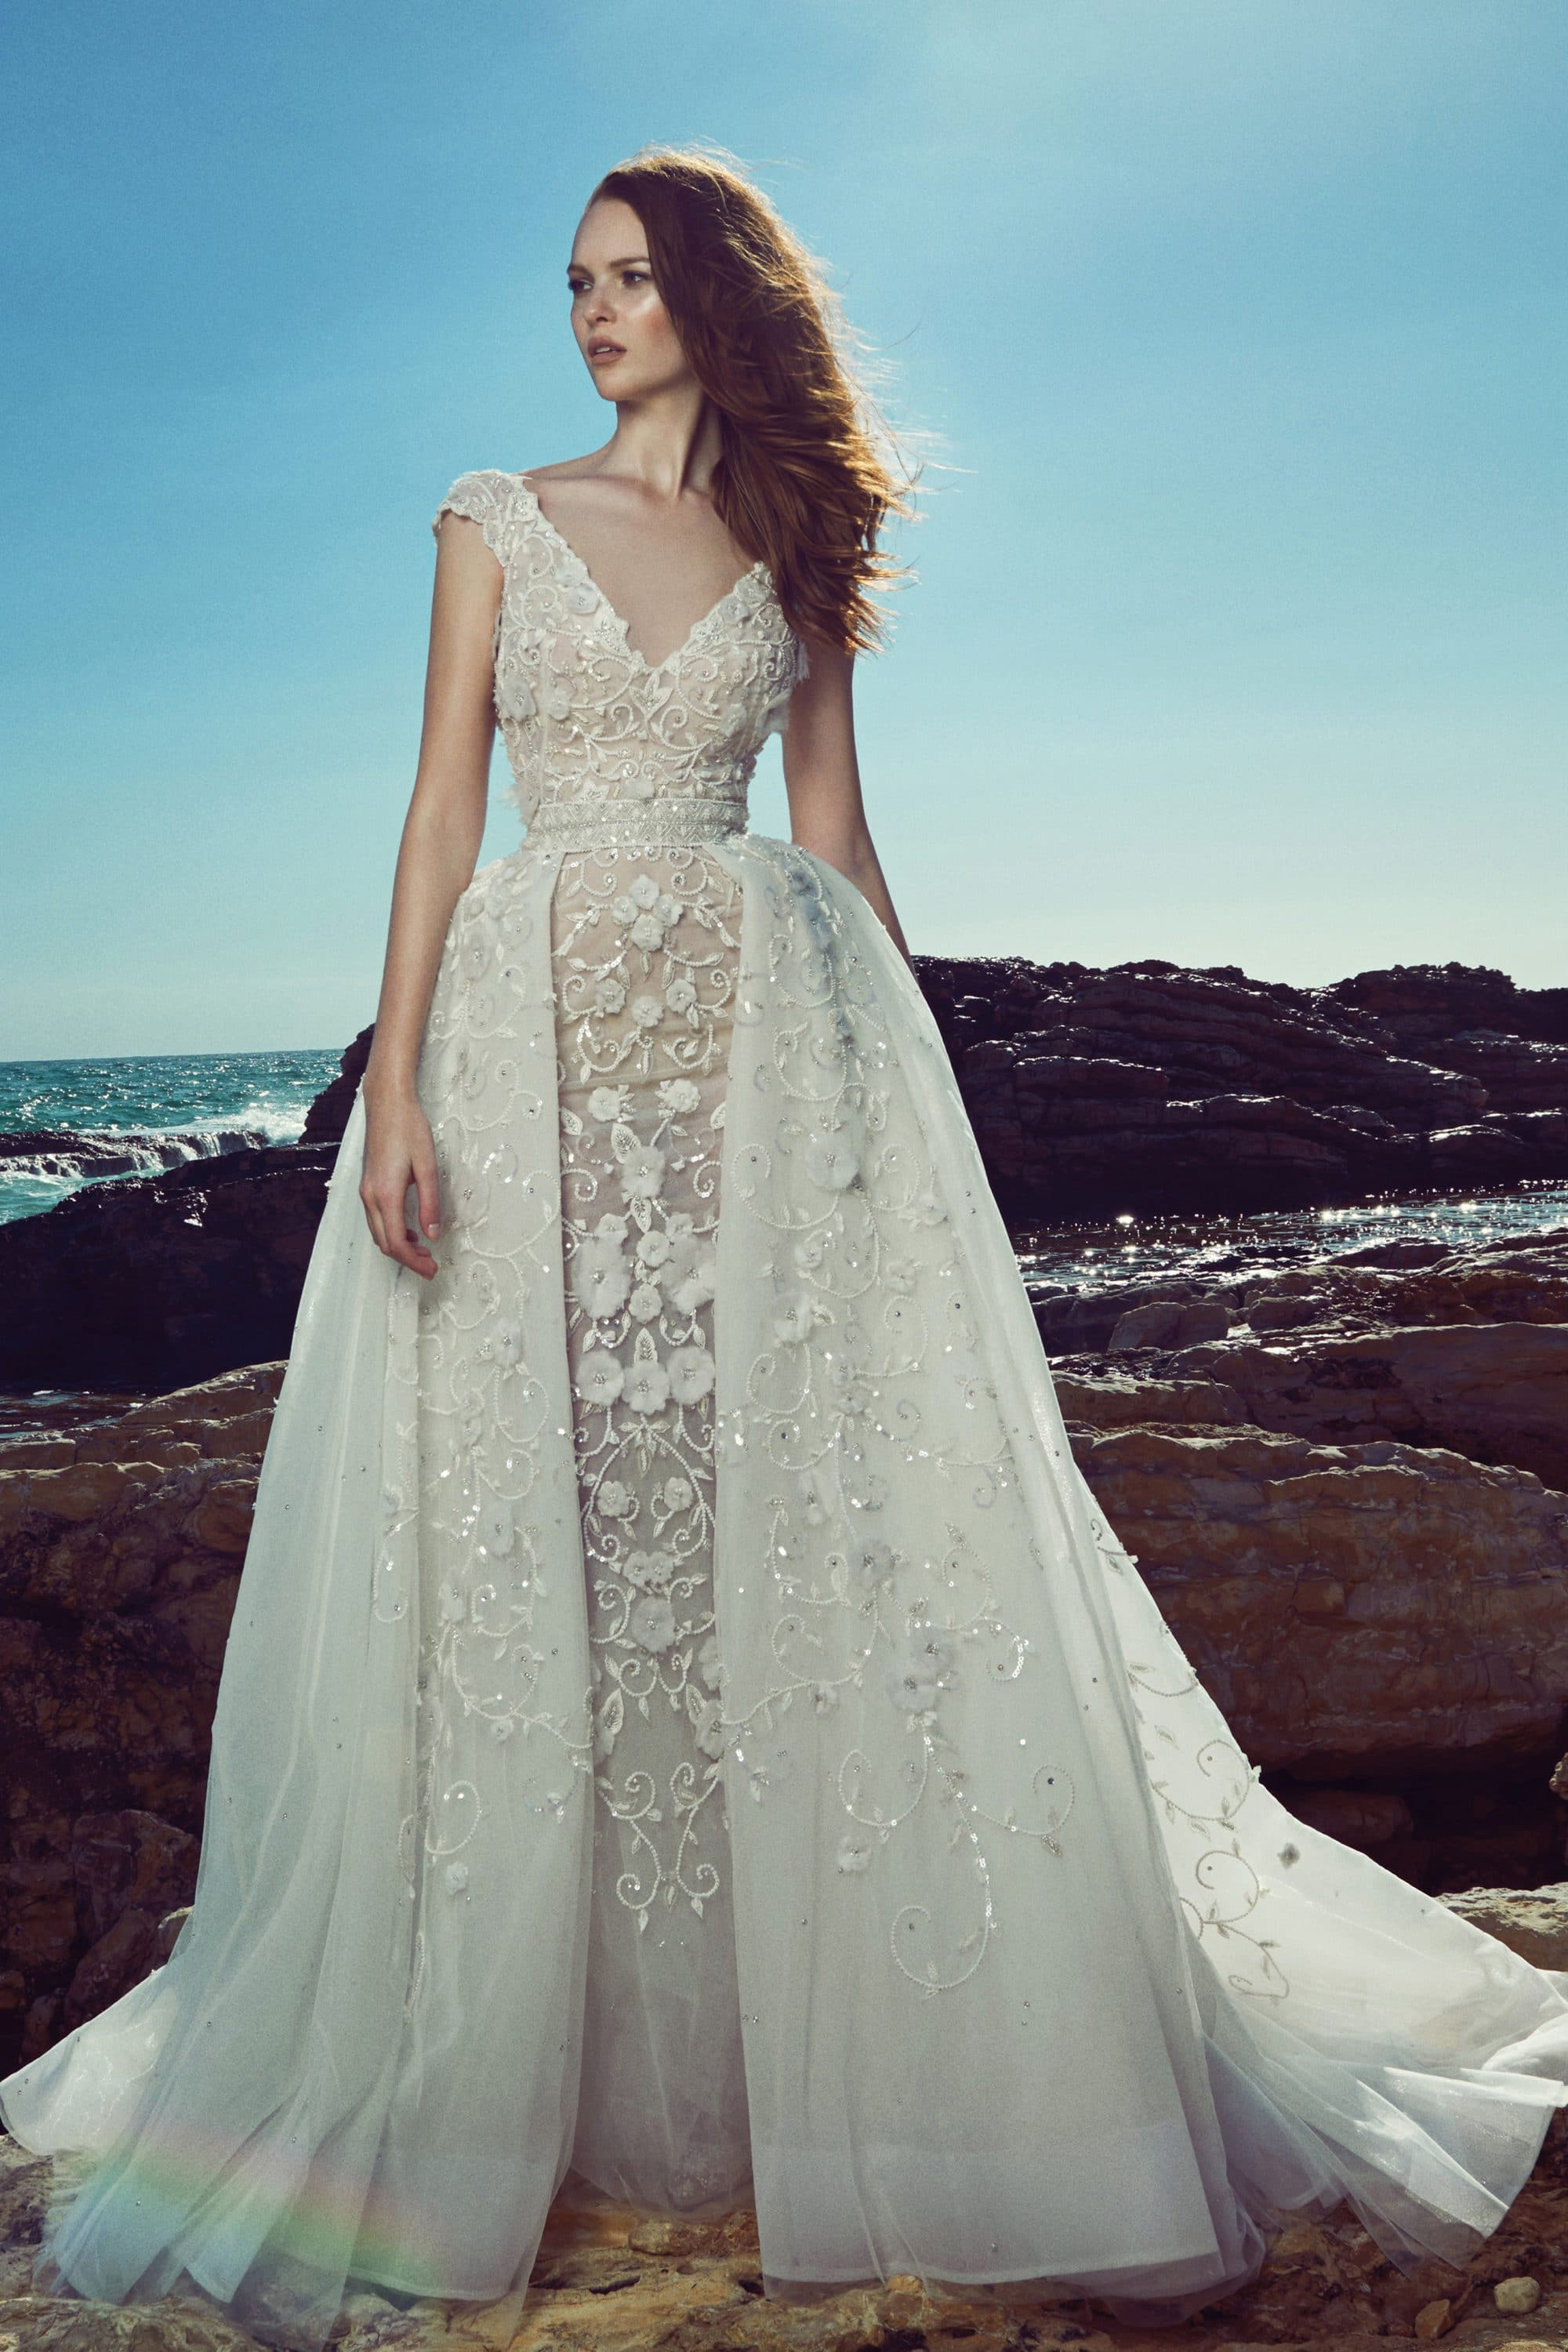 Tight laced wedding dress with overskirt Zuhair Murad | The Wedding ...